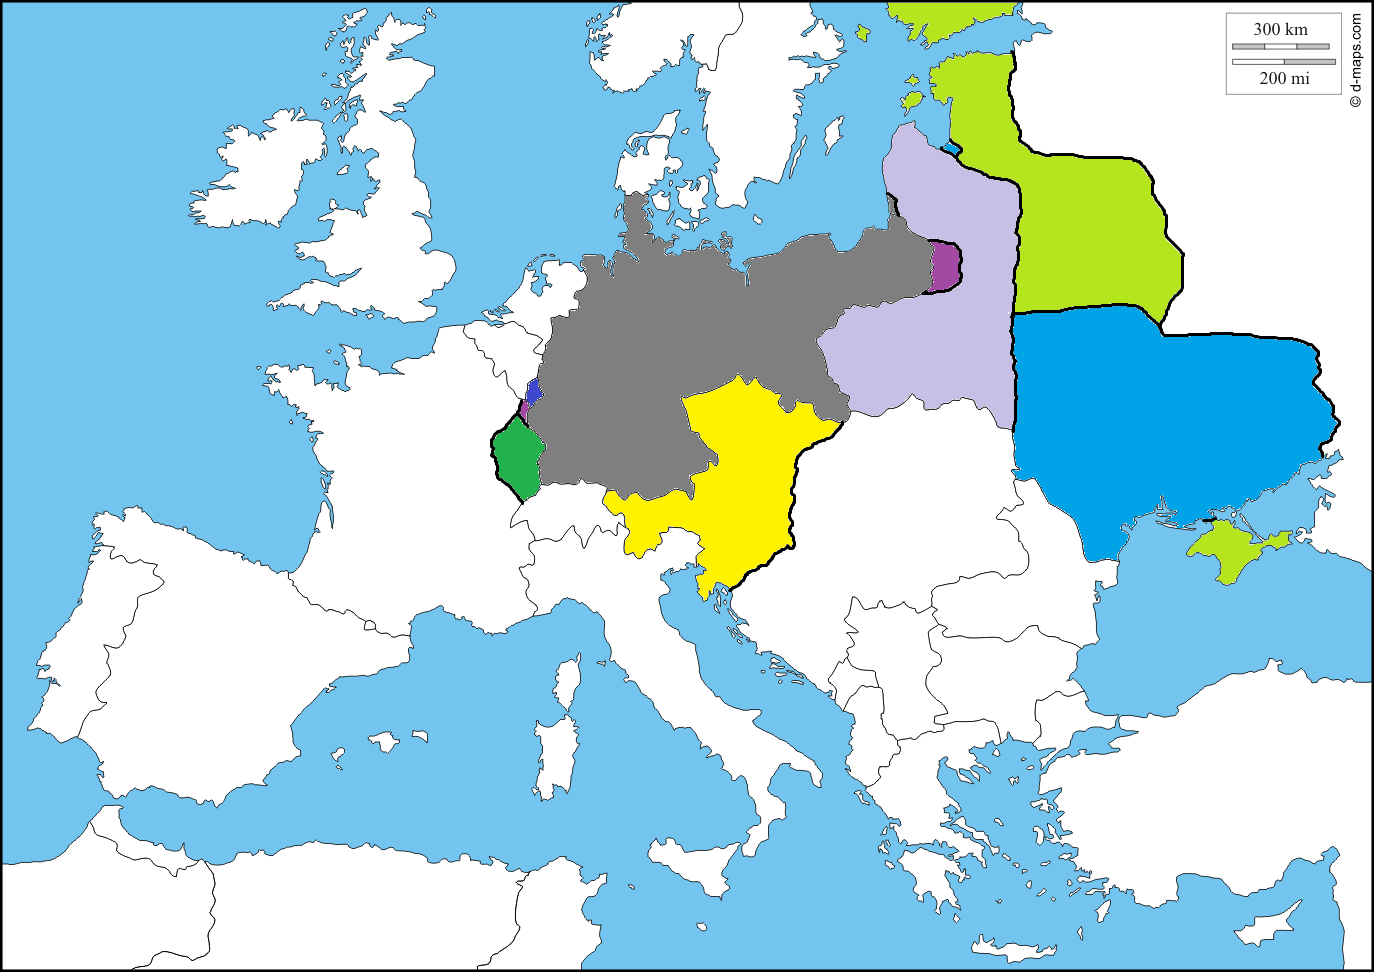 Optimal GERMANY post-World War I borders survey (Central ... on allied forces map, collective security treaty organization map, triple entente map, austro-hungarian empire 1914 map, create a united states map, hiroshima map, fascism map, kingdom of great britain map, gallipoli map, german samoa map, central power logo, italian libya map, ostrogothic kingdom map, 38th parallel north map, world war i map, unrestricted submarine warfare map, alternate wwi map, grand duchy of lithuania map, carpatho-ukraine map, chamorro language map,